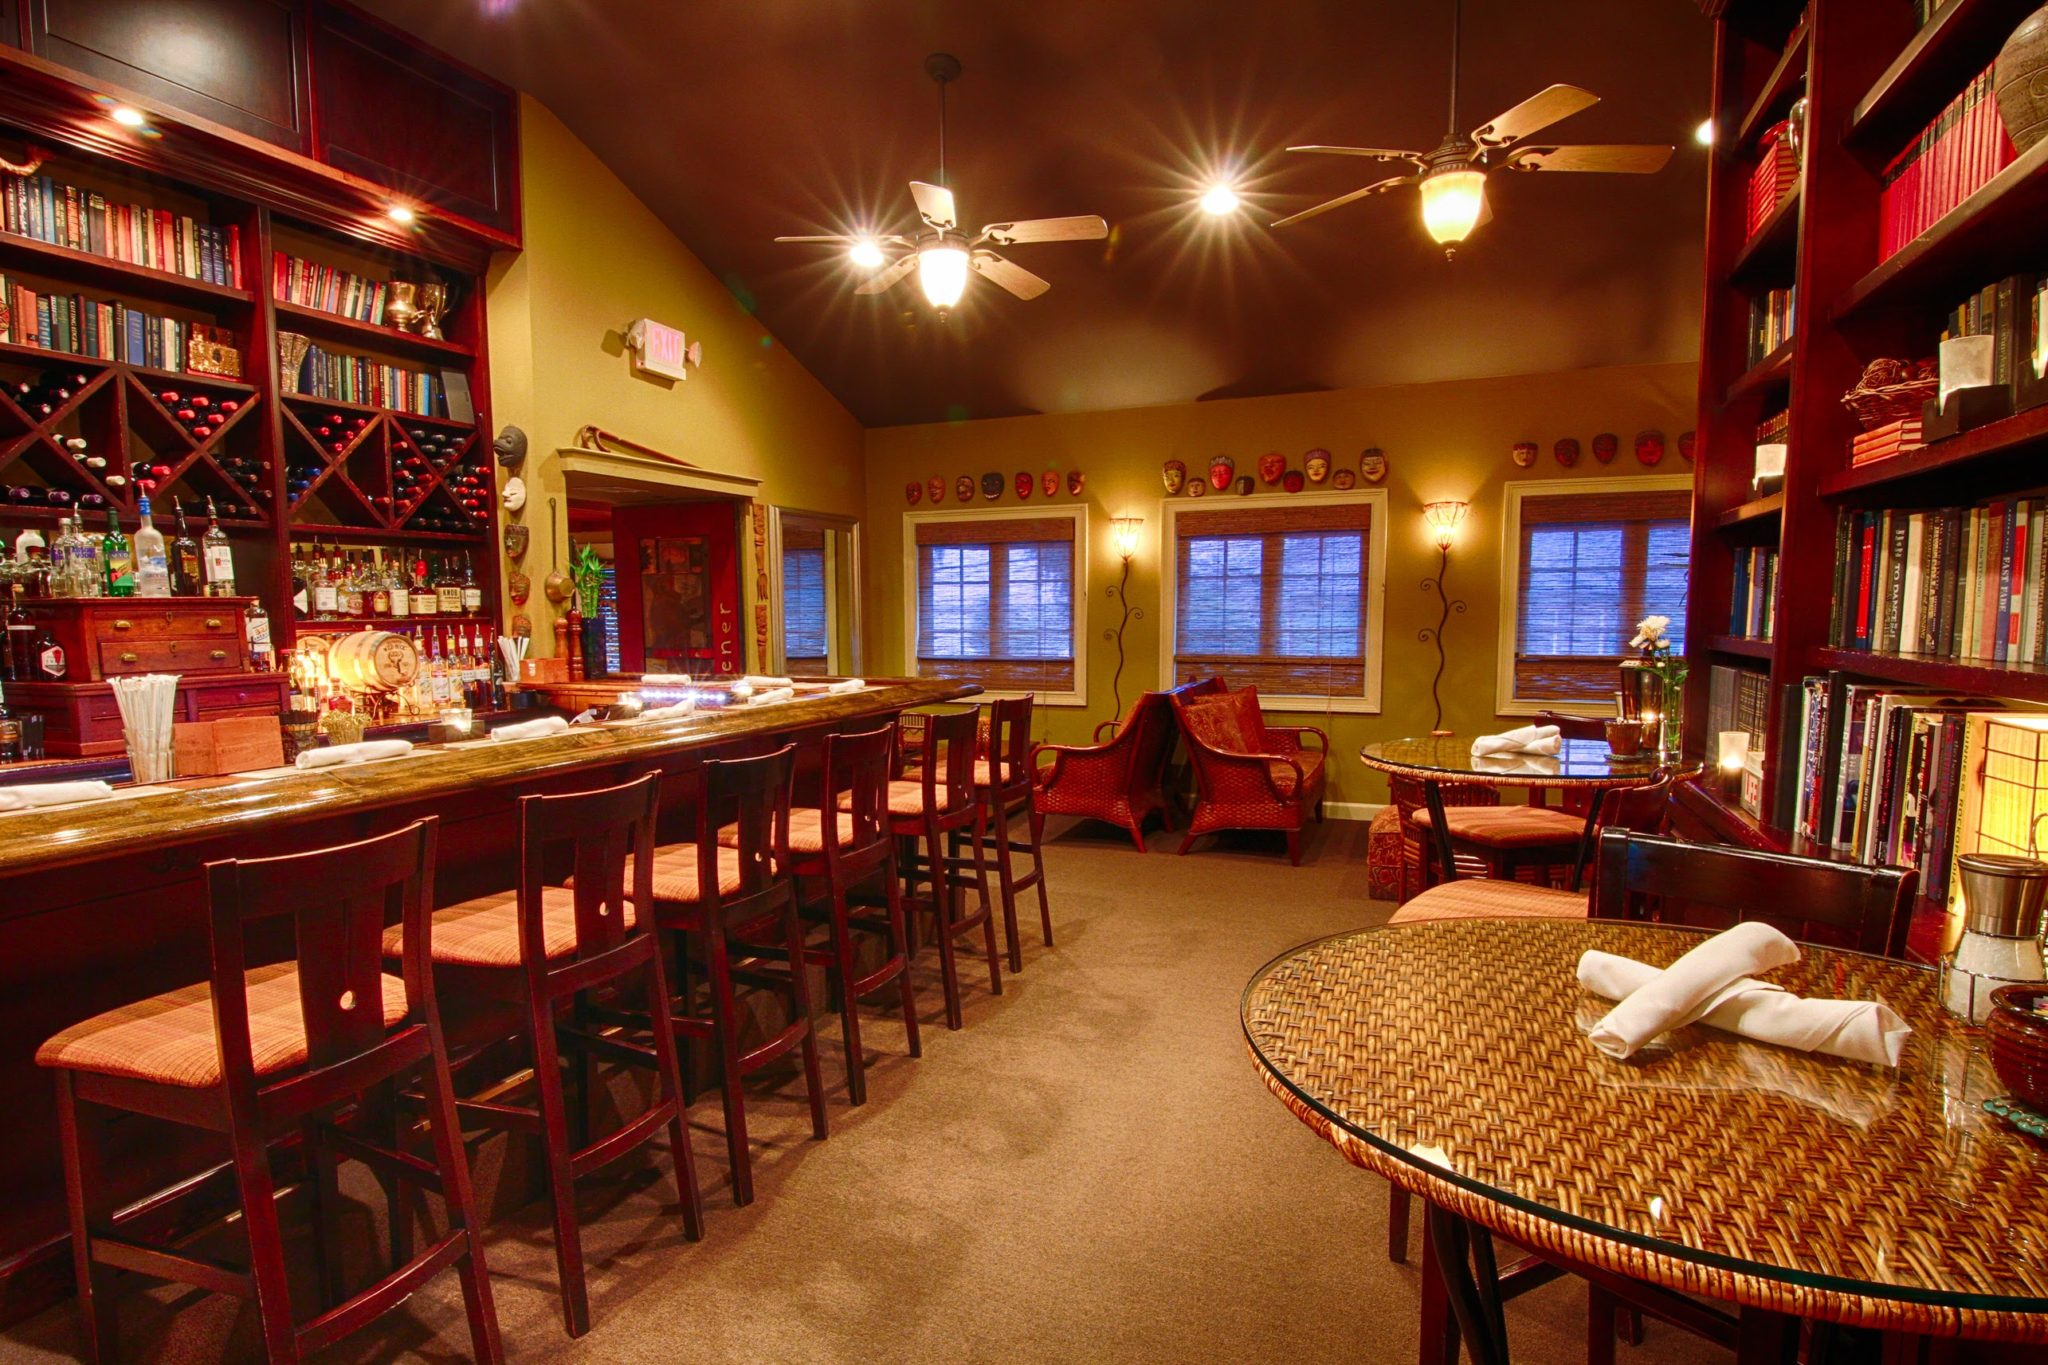 Bar countertop with high-top chairs and a bookshelf wall behind the bar.